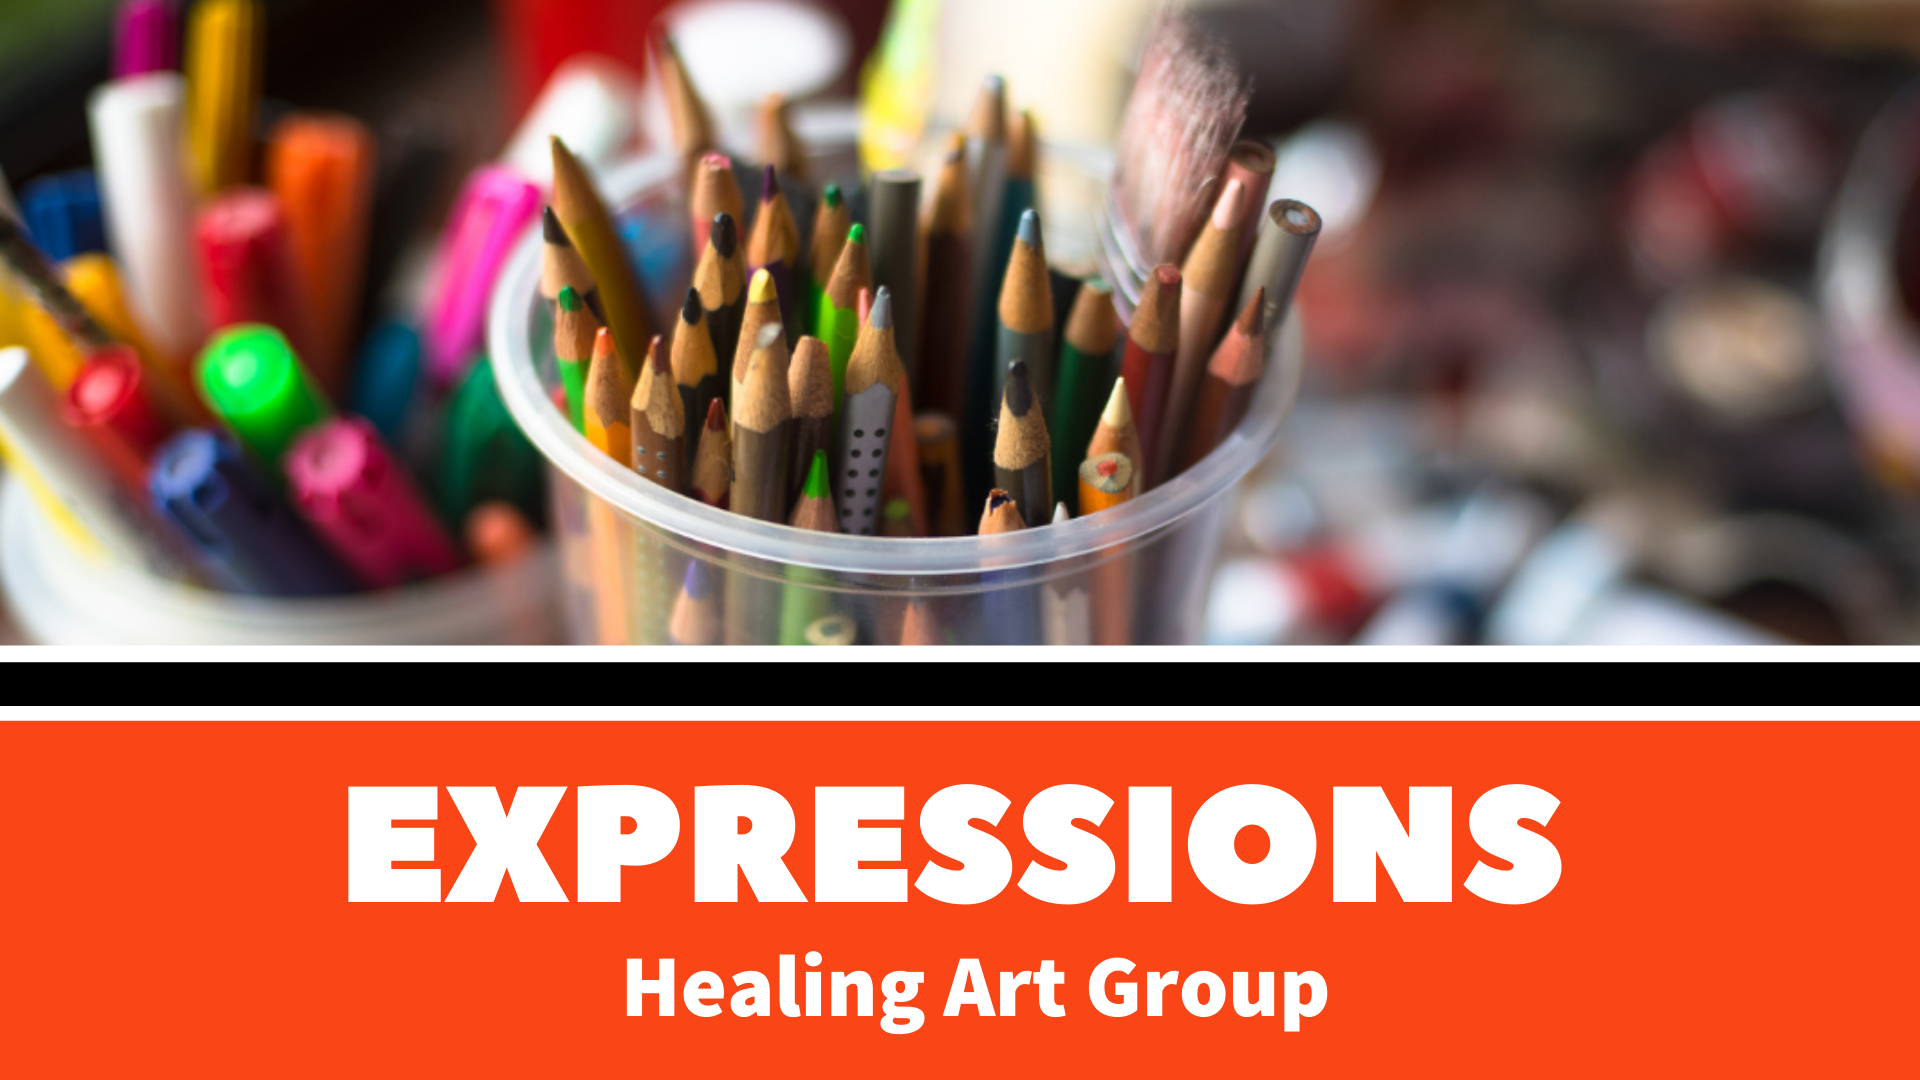 SUSPENDED - Expressions Healing Art Group @ YWCA Advocacy Center | Lafayette | Indiana | United States